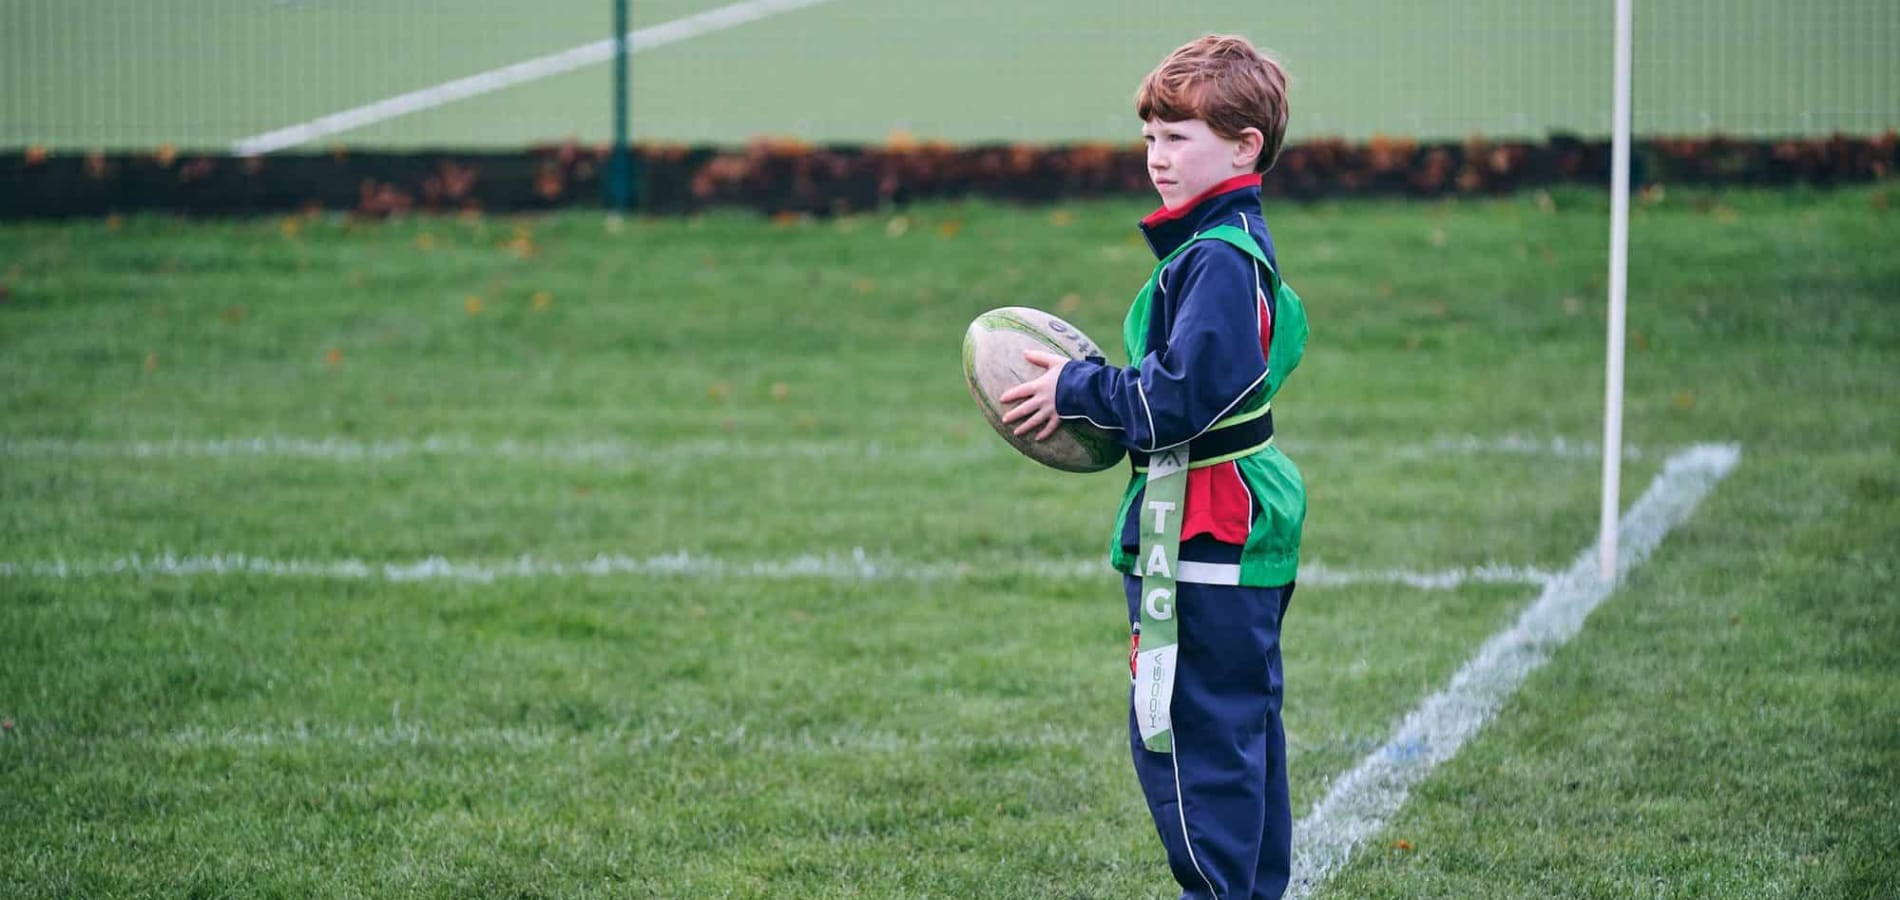 Fairfield pupil playing Tag Rugby